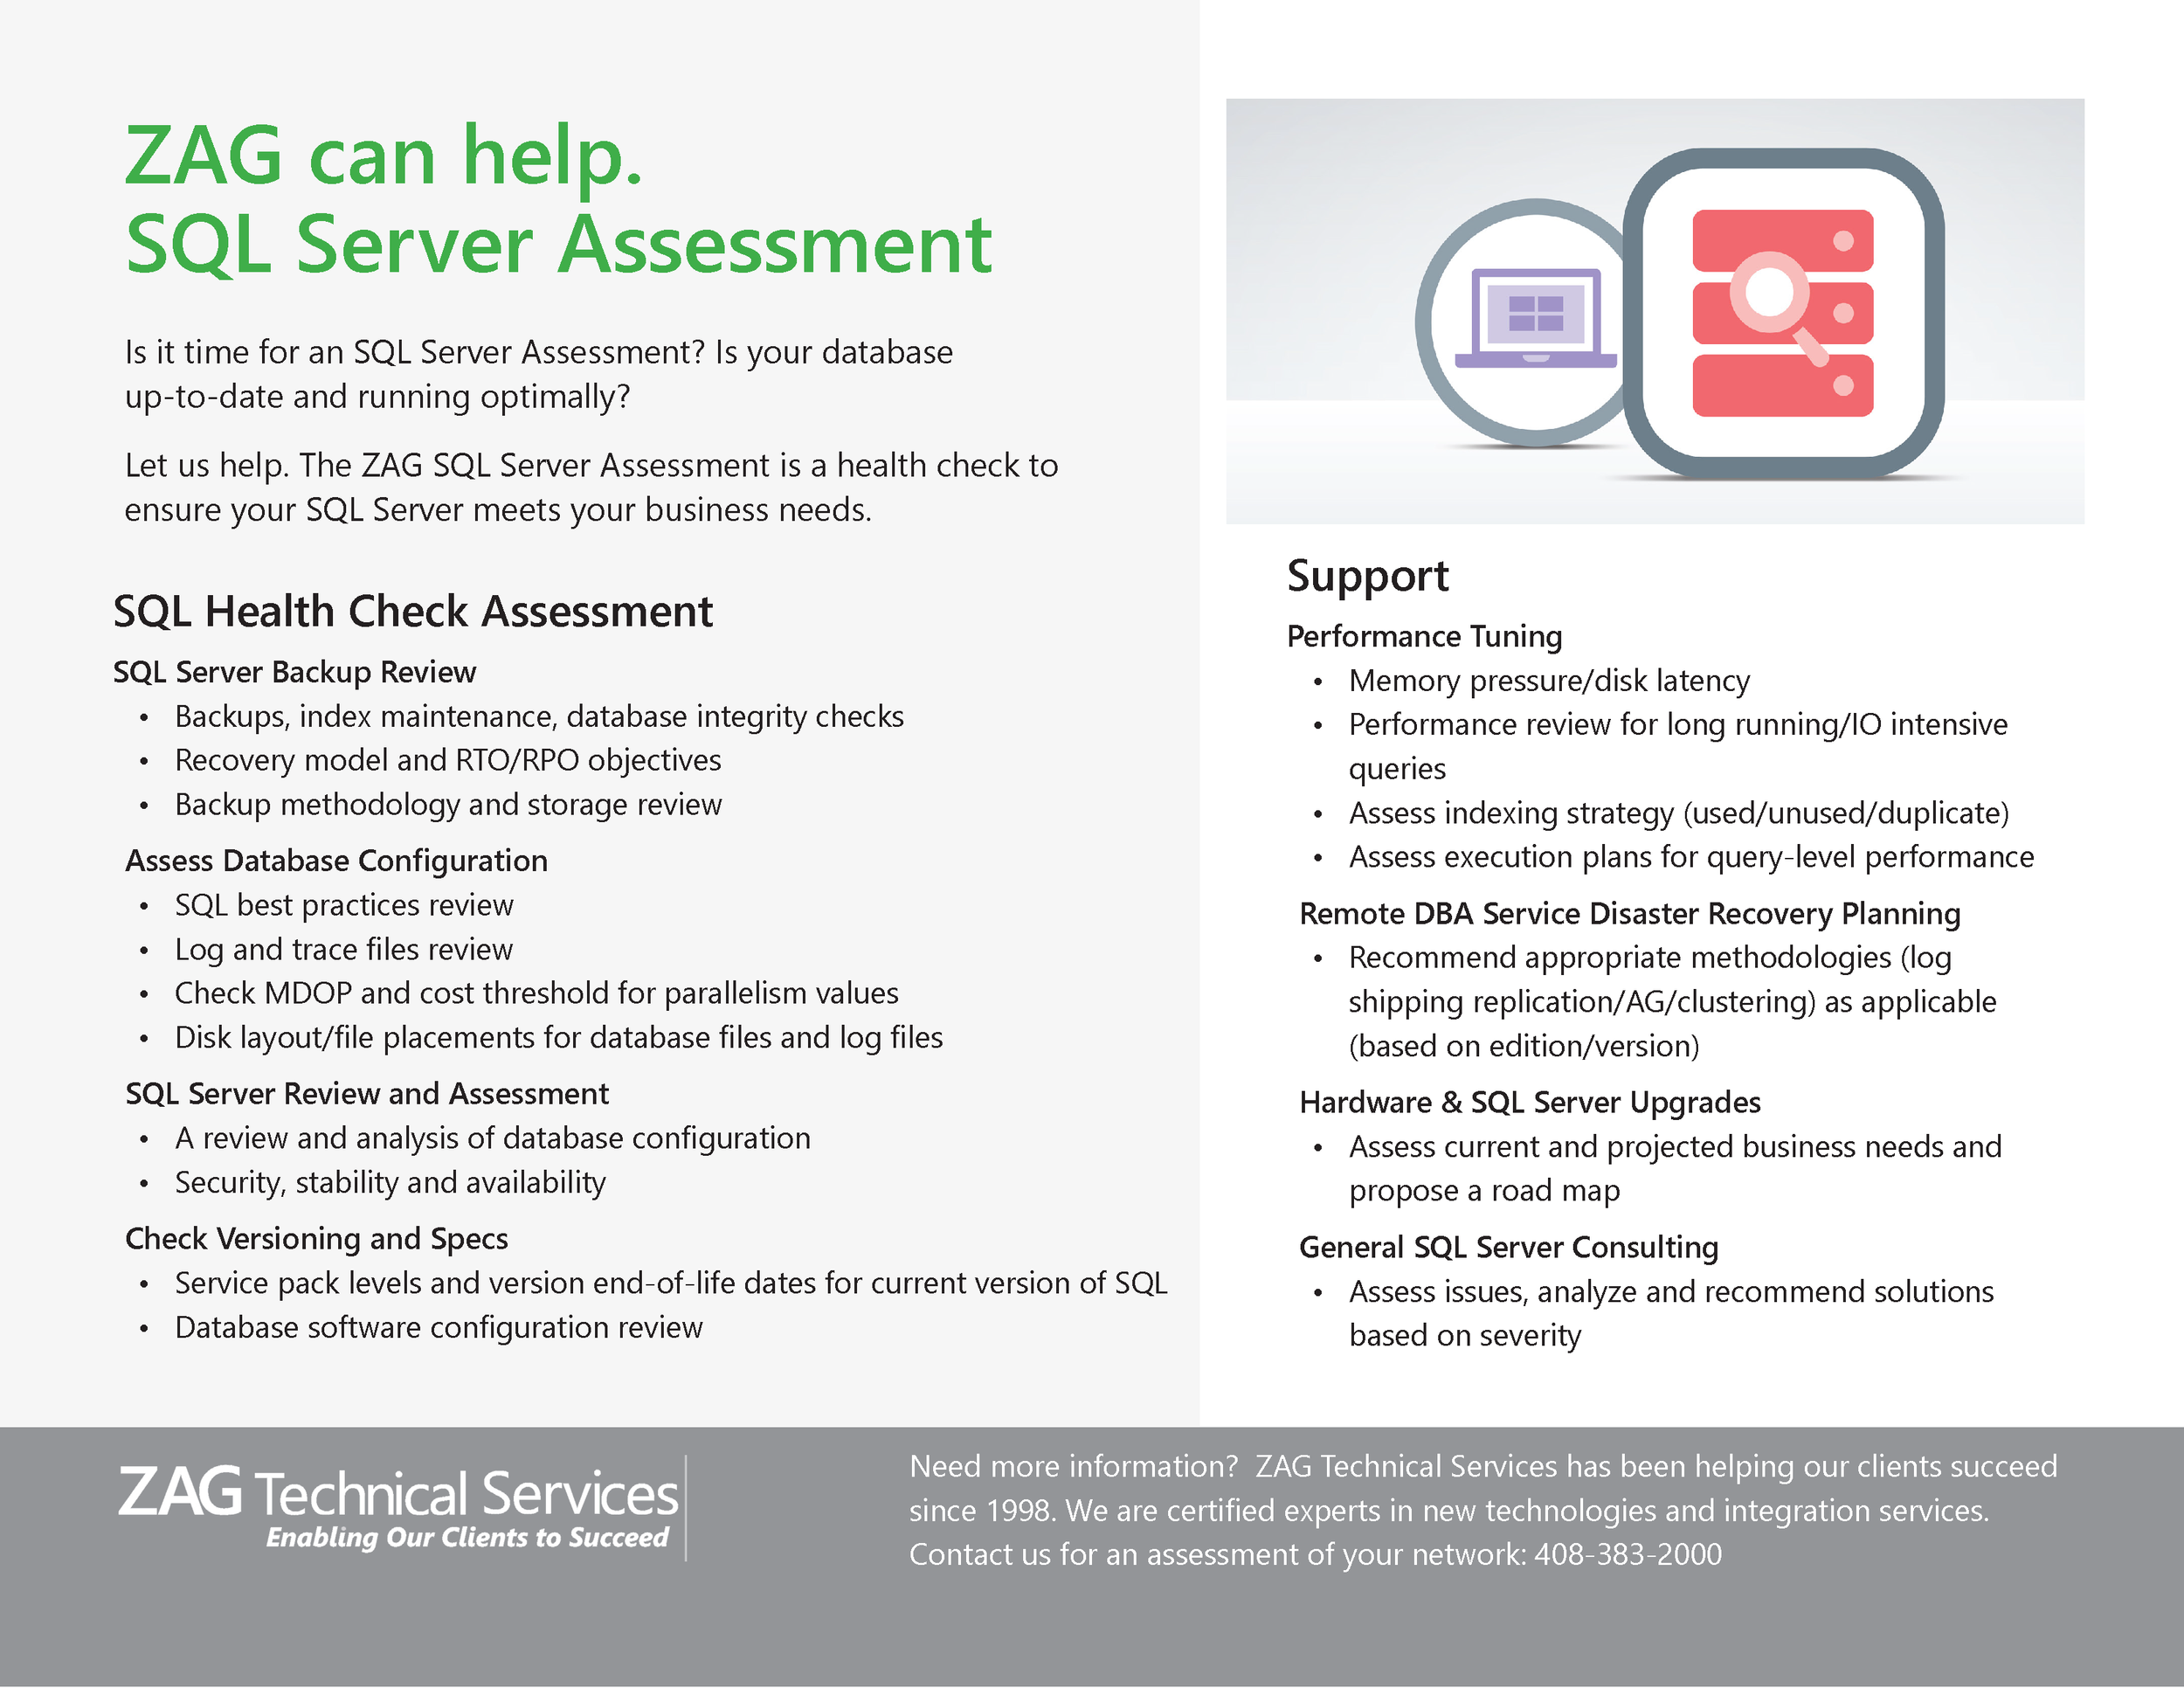 Is your database up-to-date and secure?